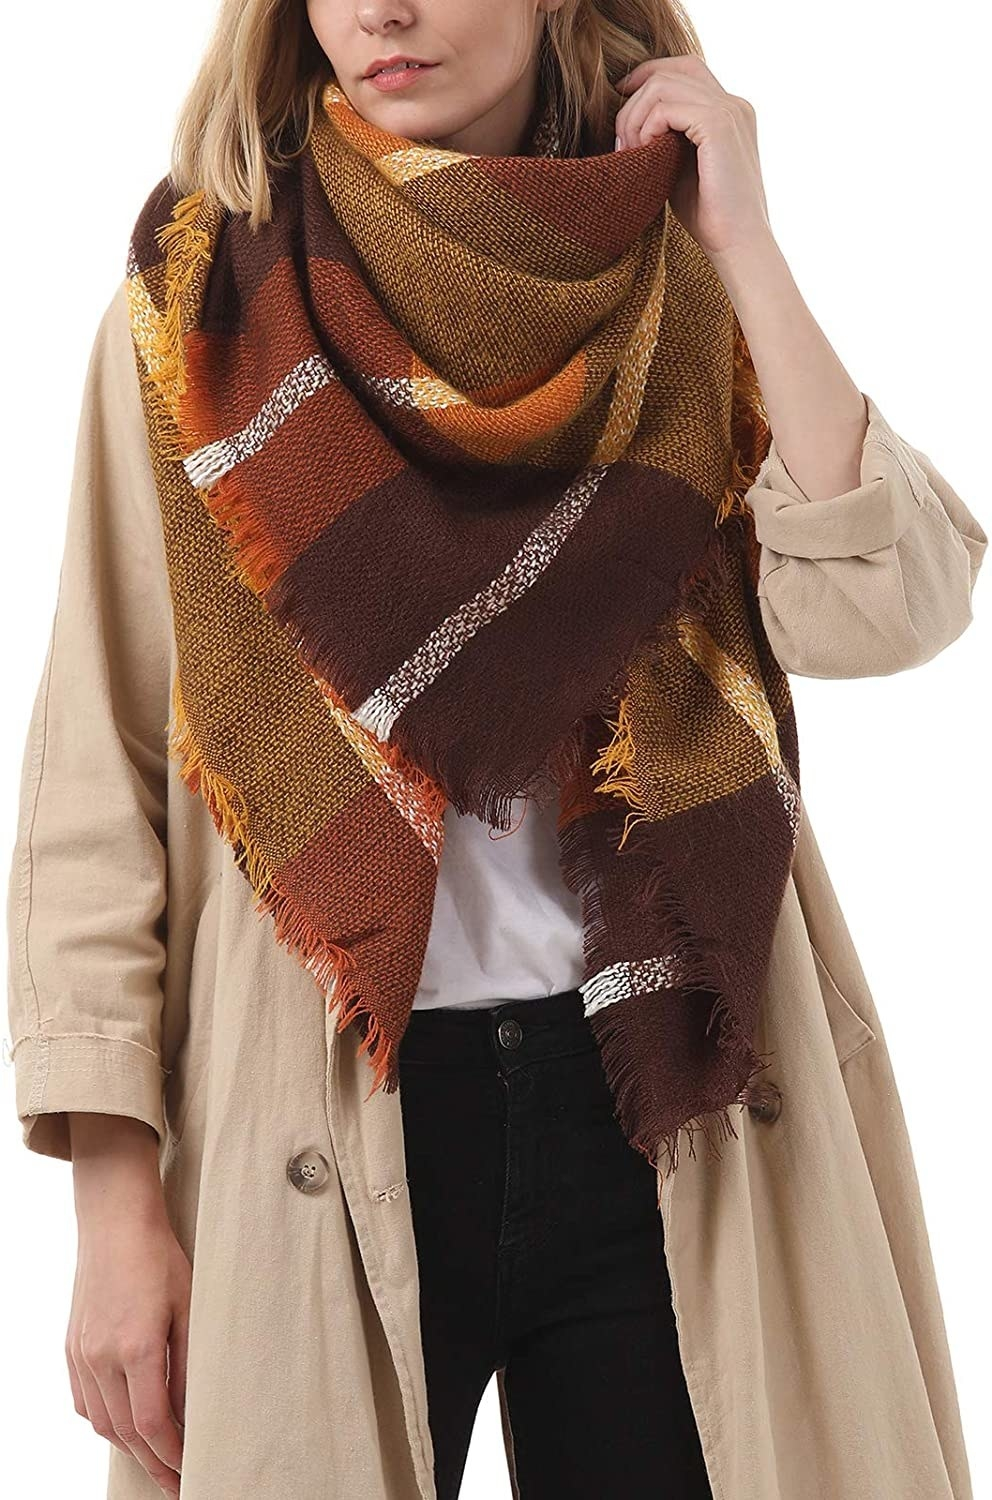 a model wearing the brown plaid oversized shawl